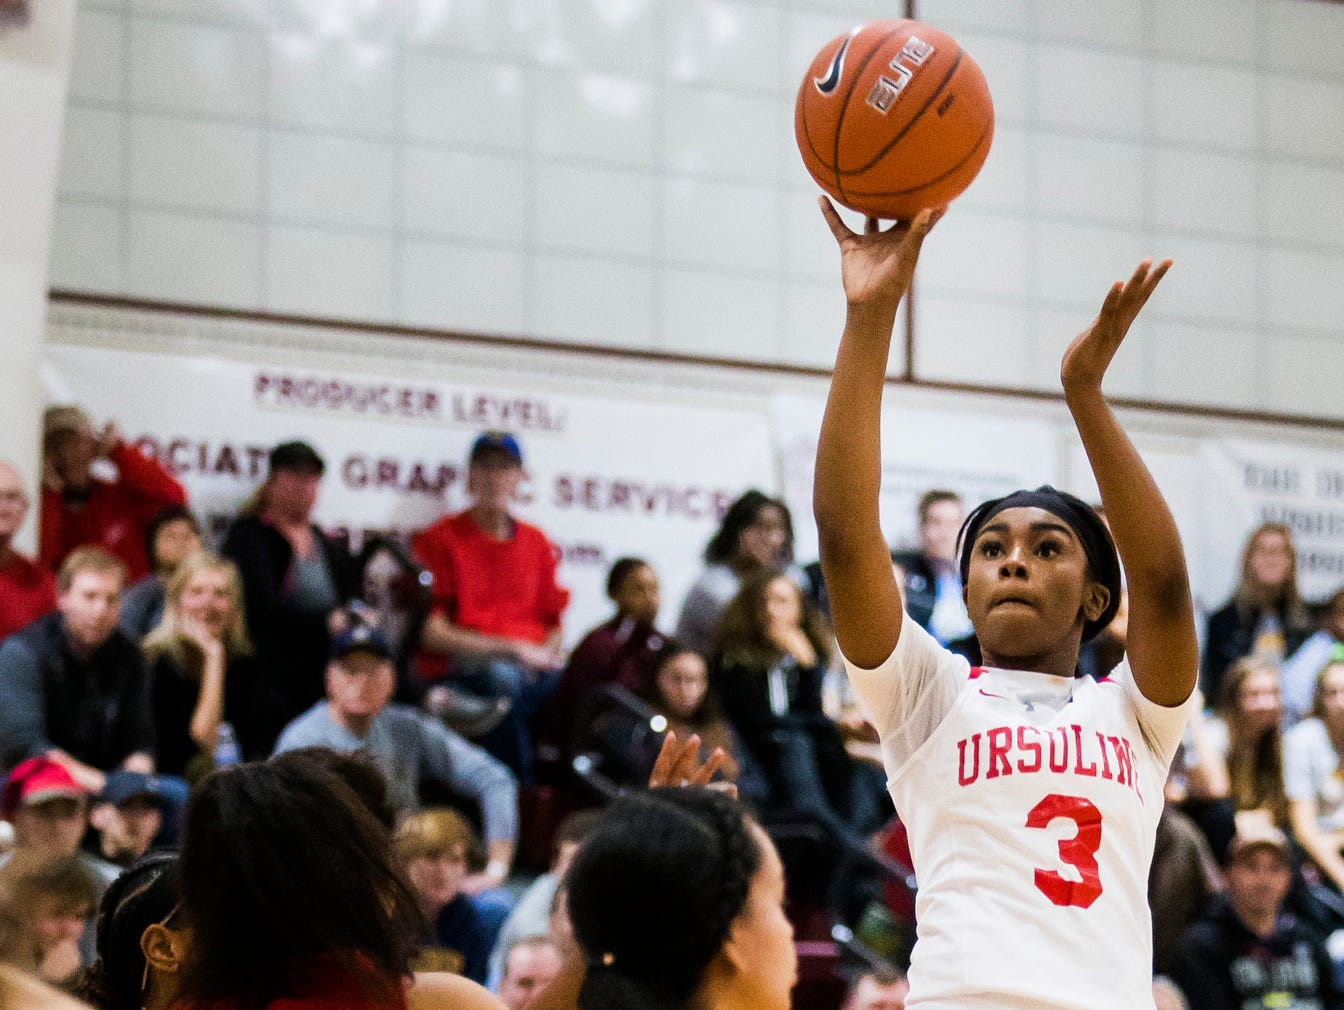 Ursuline's Yanni Hendley-Mccalla puts up a shot in the first half of Ursuline's 39-26 win over Redondo Union High School in the Diamond State Classic at St. Elizabeth High School in Wilmington on Tuesday night.